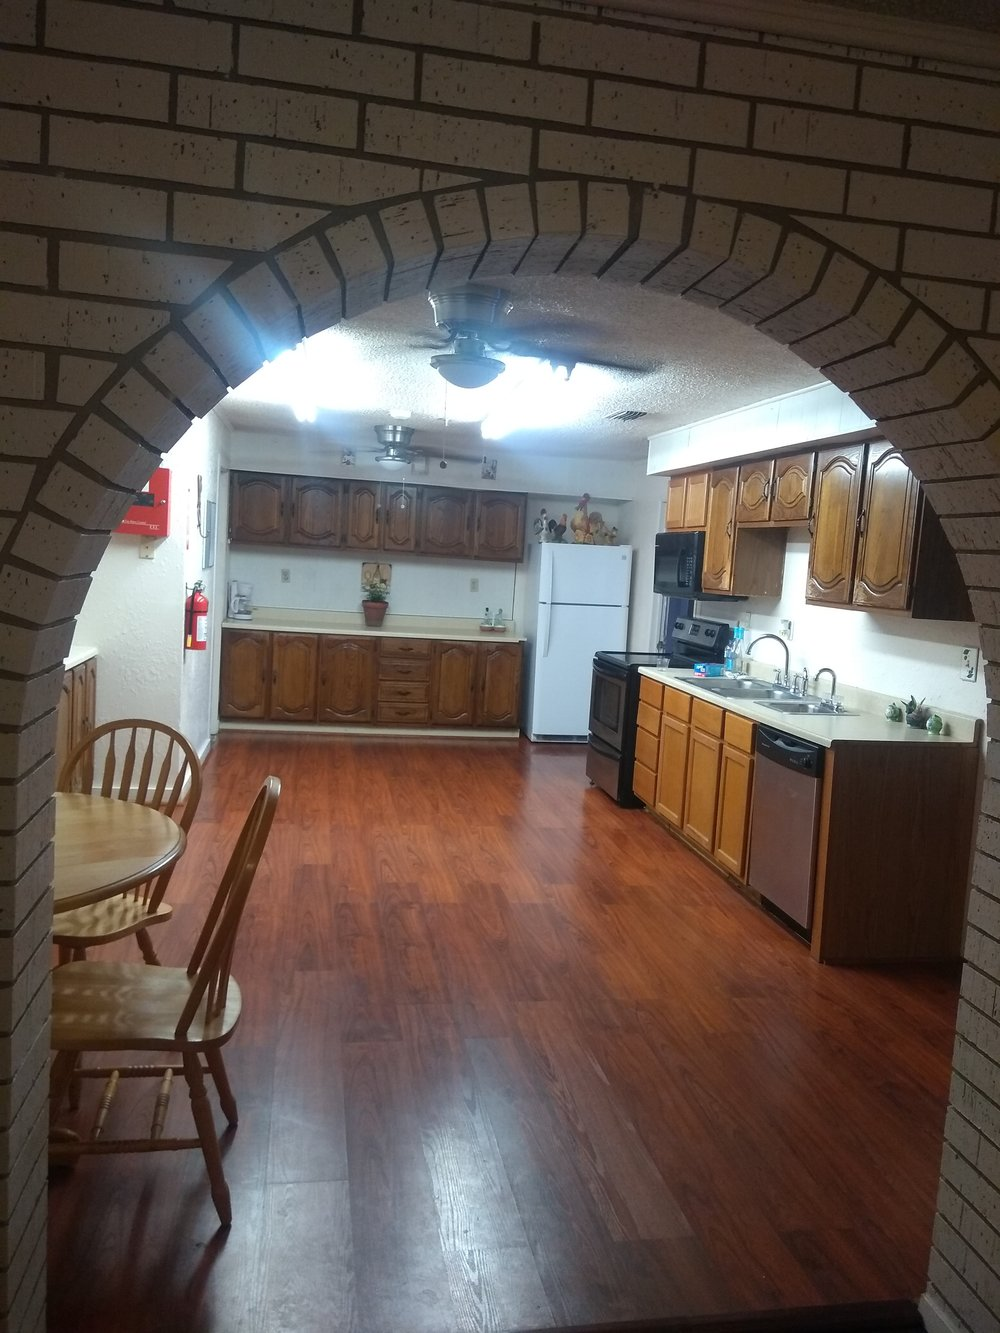 Beeville-Texas-Assisted-Living-Kitchen.jpg